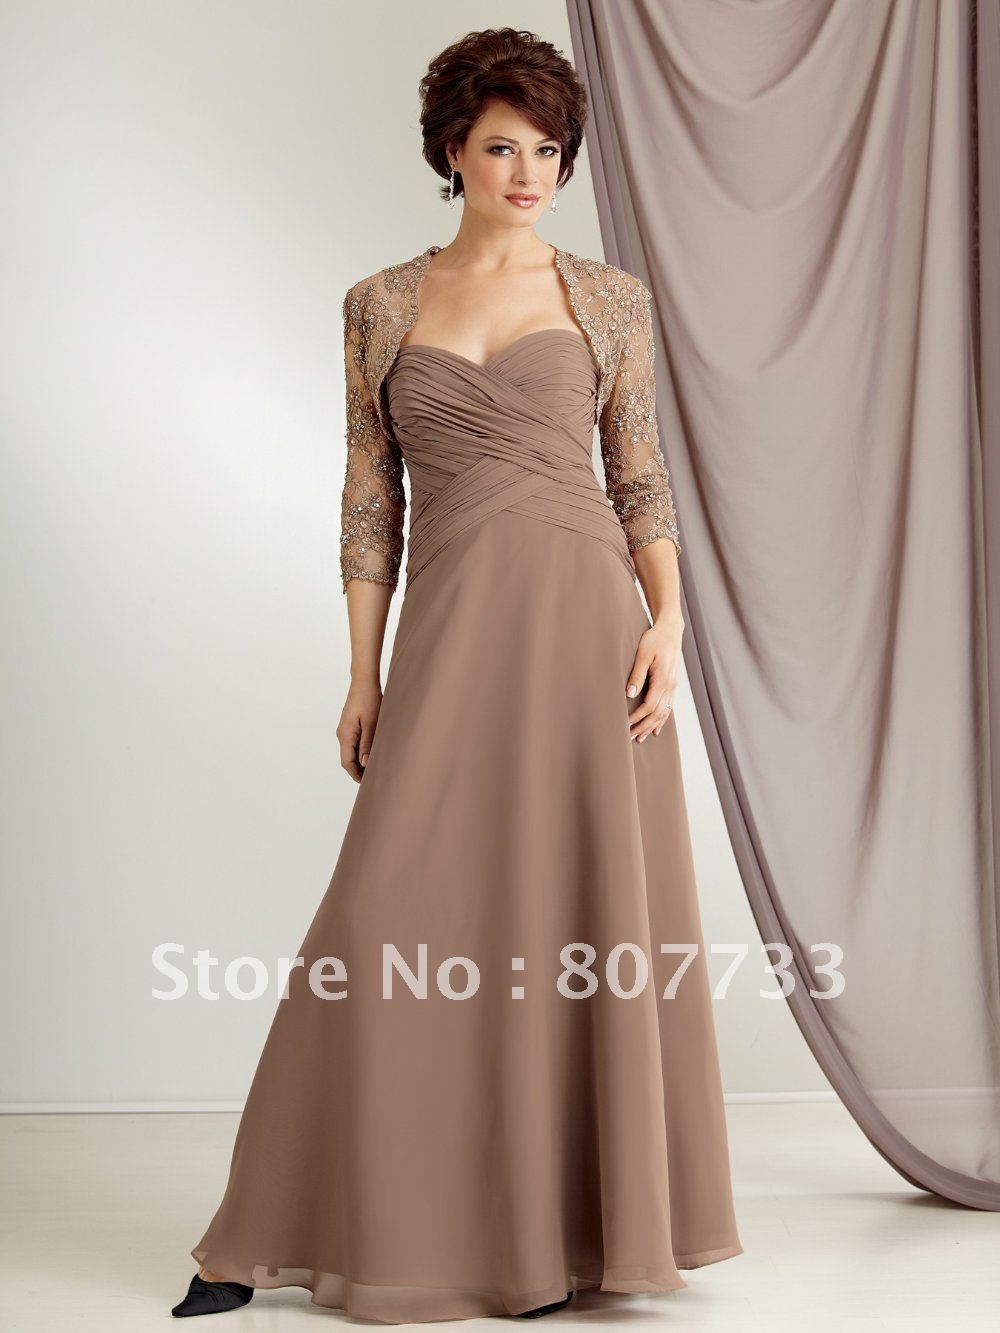 Elegant Strapless Light Brown Chiffon Plus Size Mother Of The Bride Dresses With Jackets In From Weddings Events On